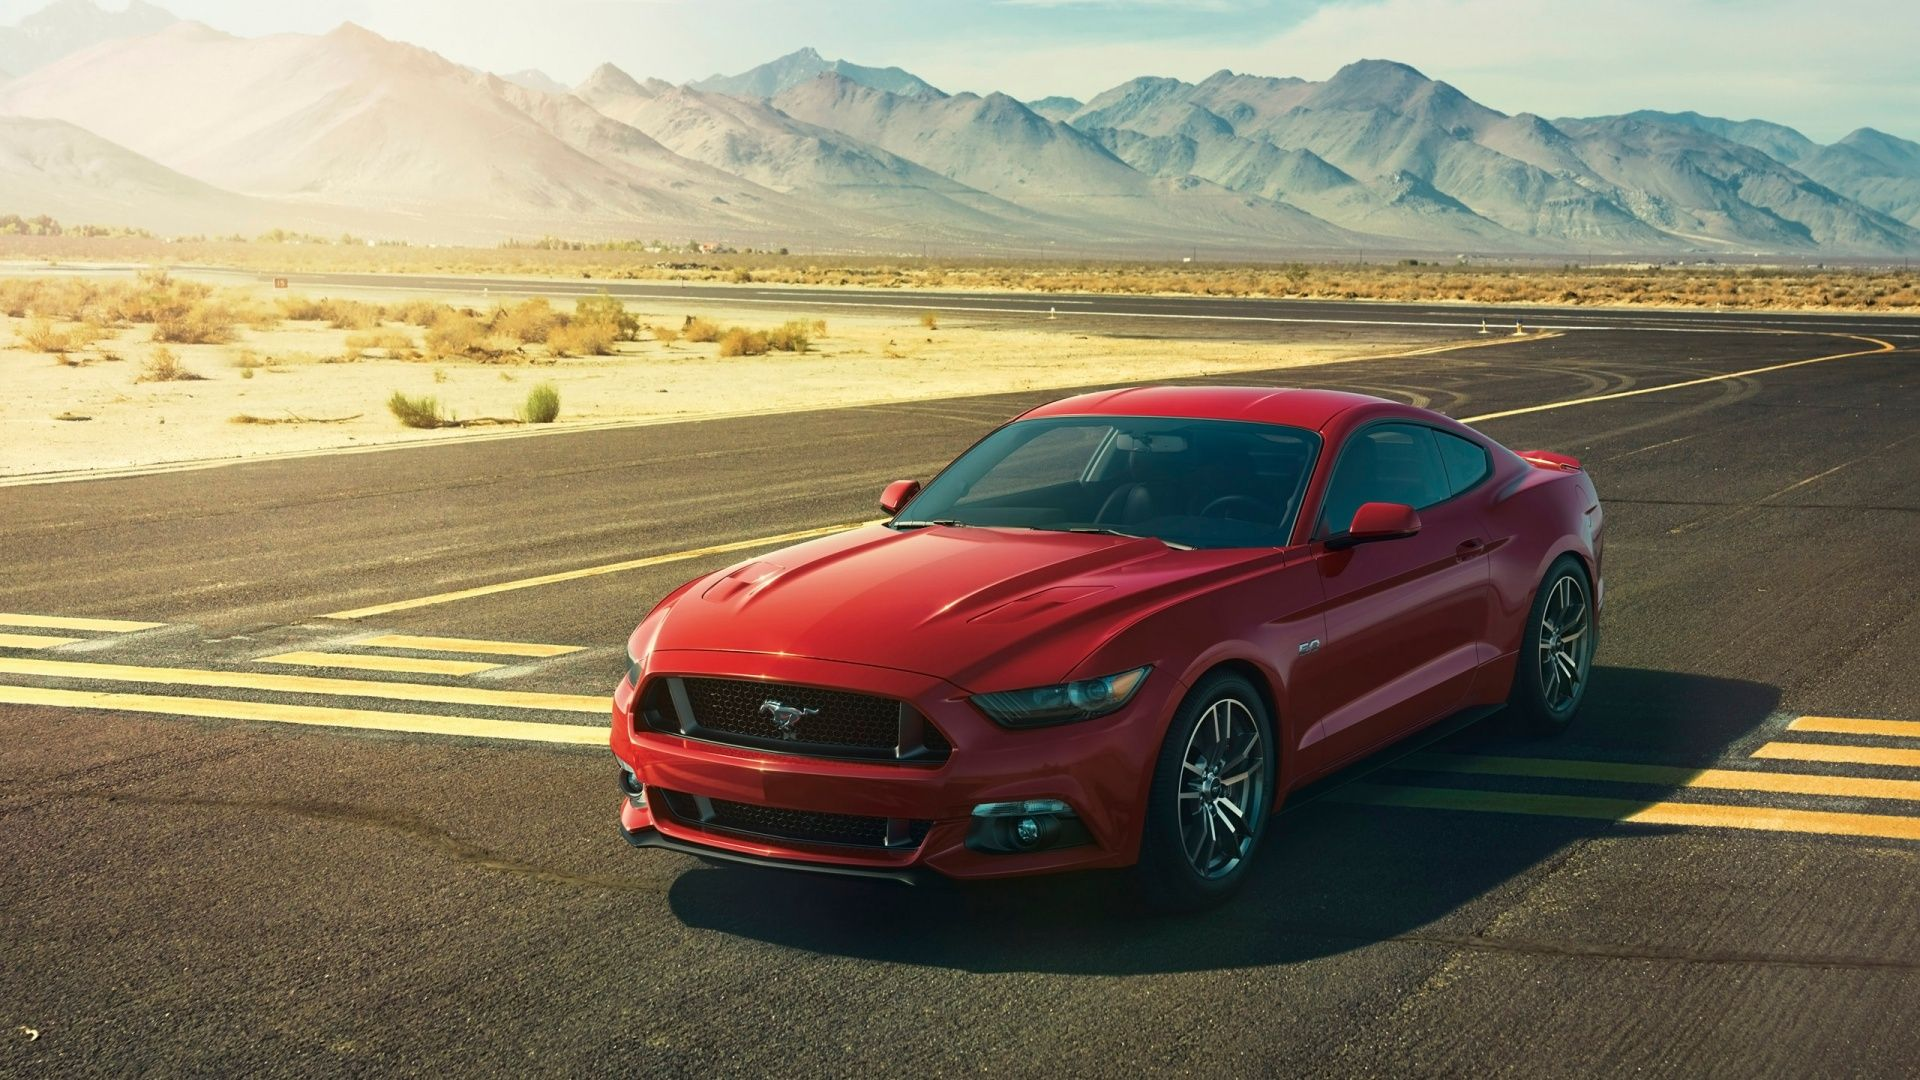 Ford Mustang wallpaper Automakers face peting interests when it